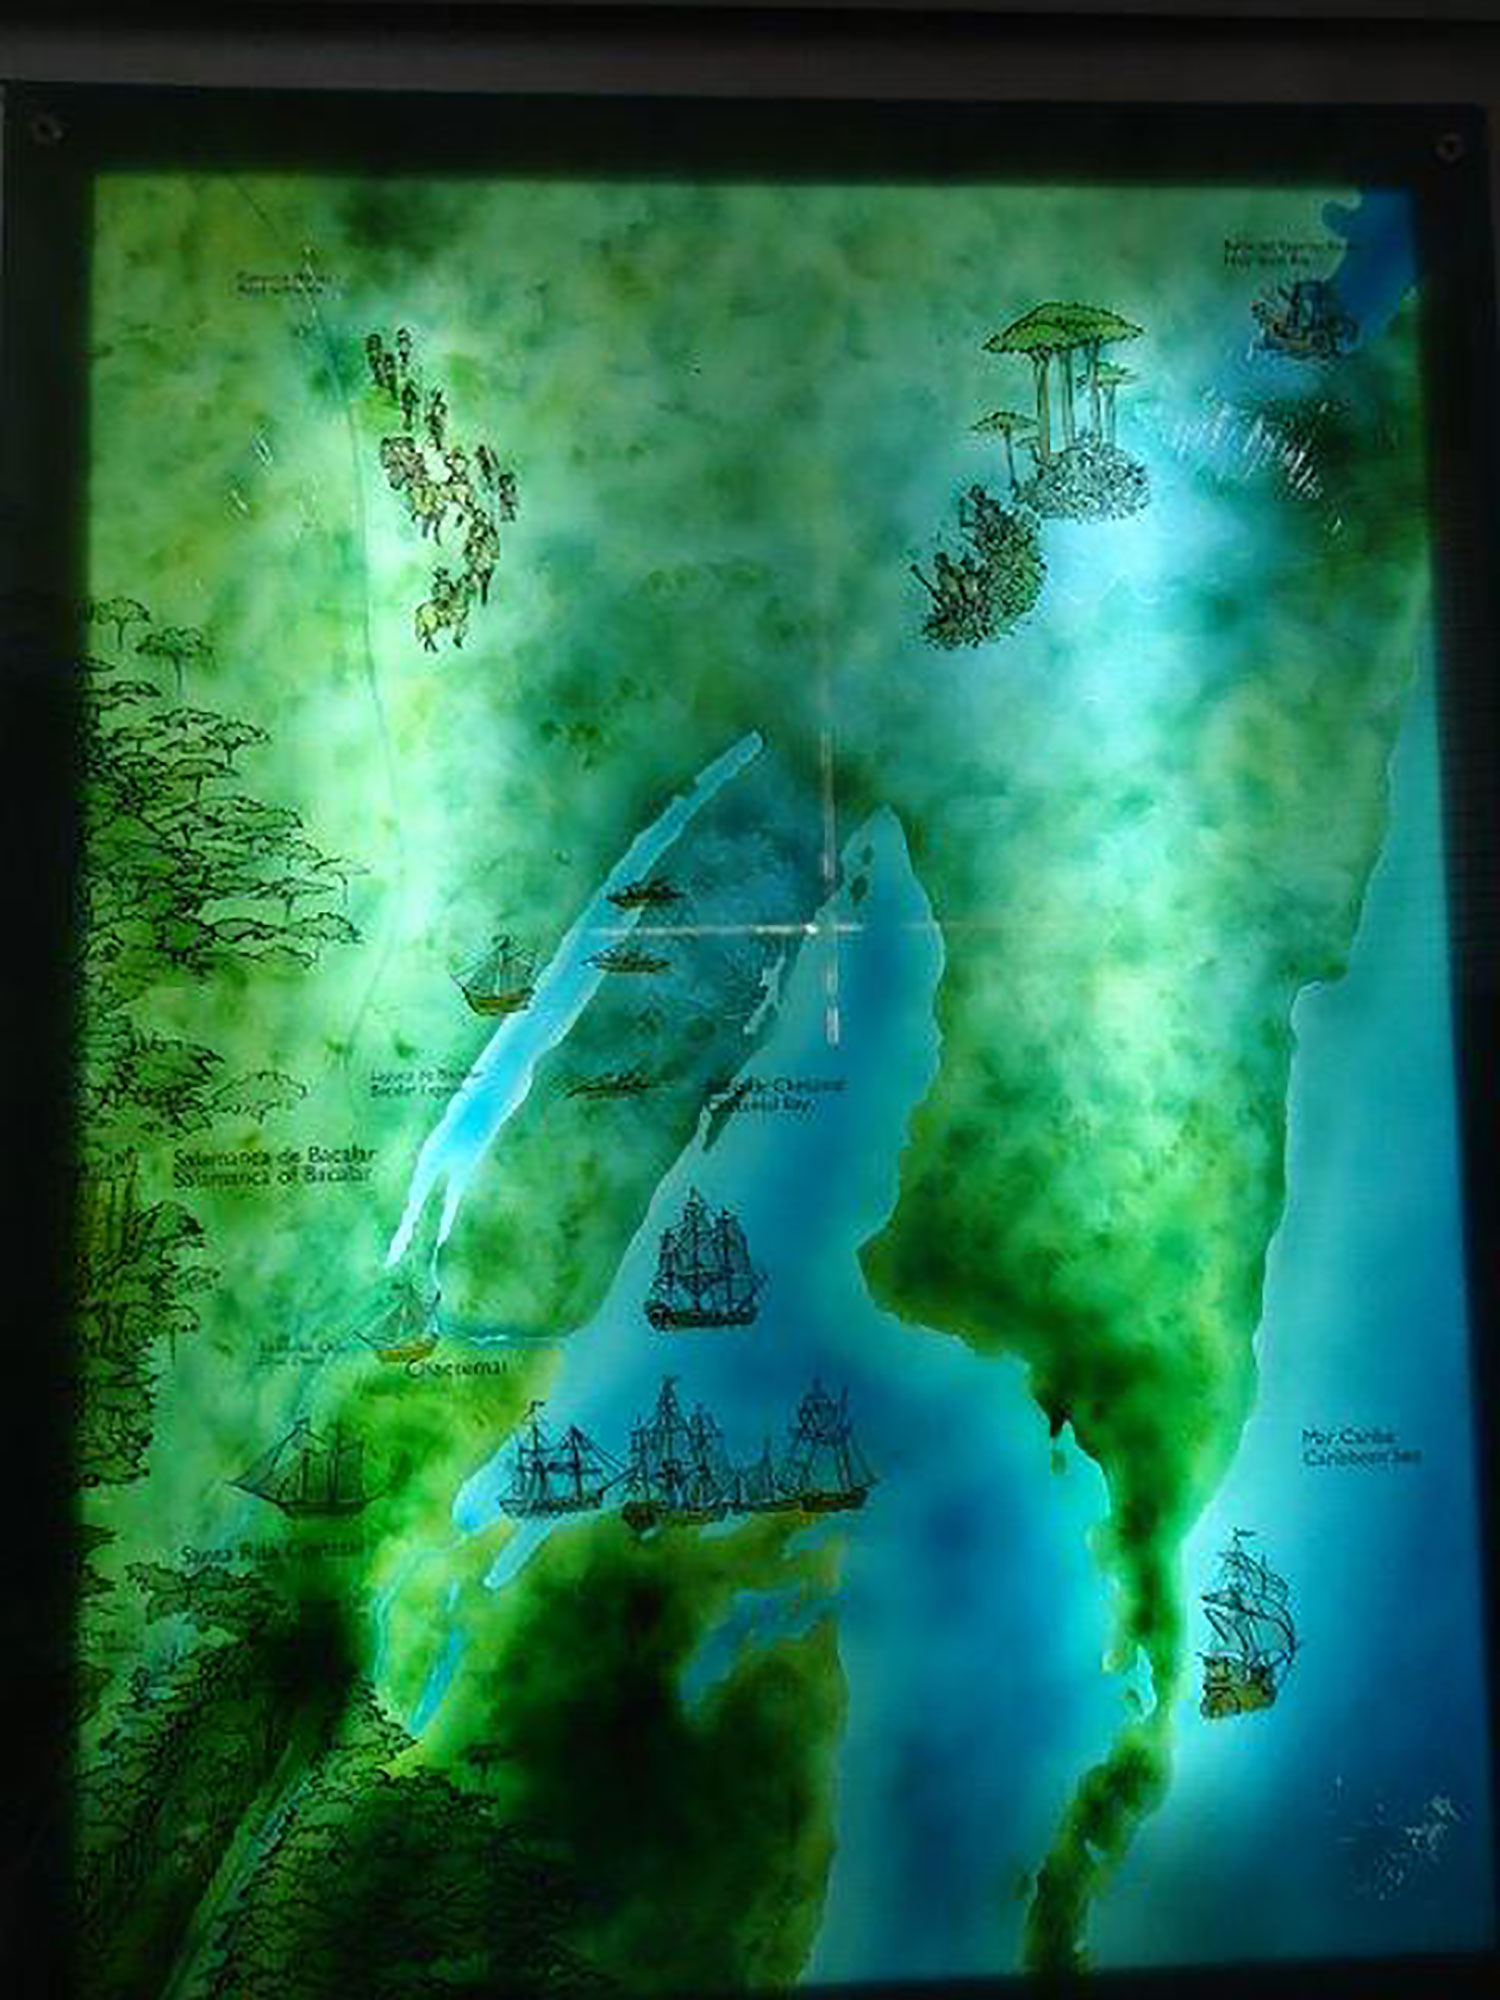 Spanish or pirate boats in Chetumal Bay and Bacalar lake, as shown on the museum map.